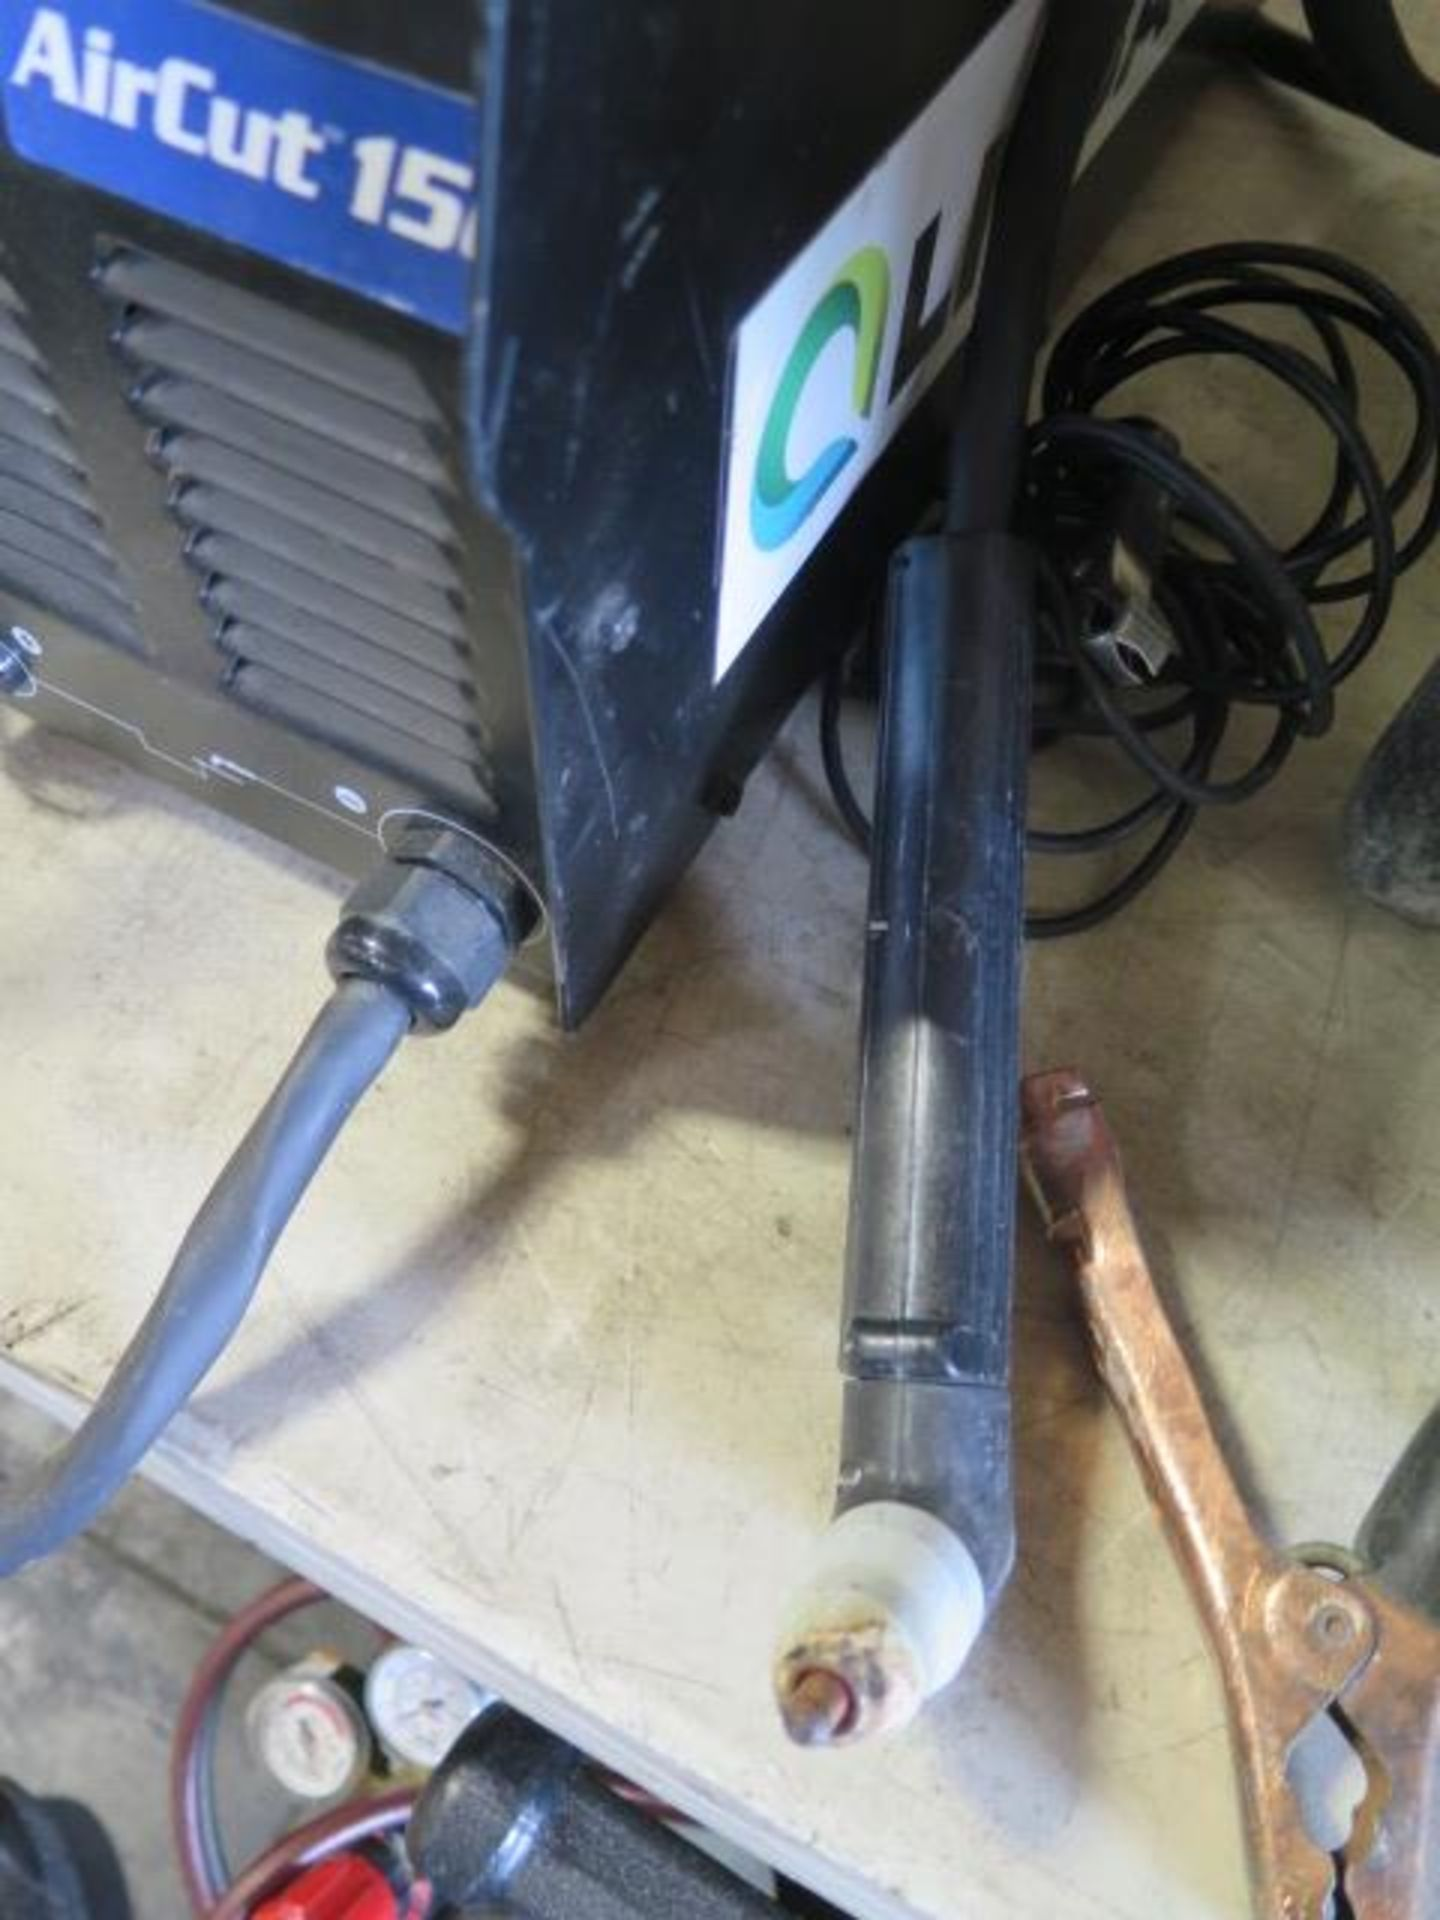 Thermal Dynamics AirCut 15 Plasma Cutting Power Source (SOLD AS-IS - NO WARRANTY) - Image 4 of 5